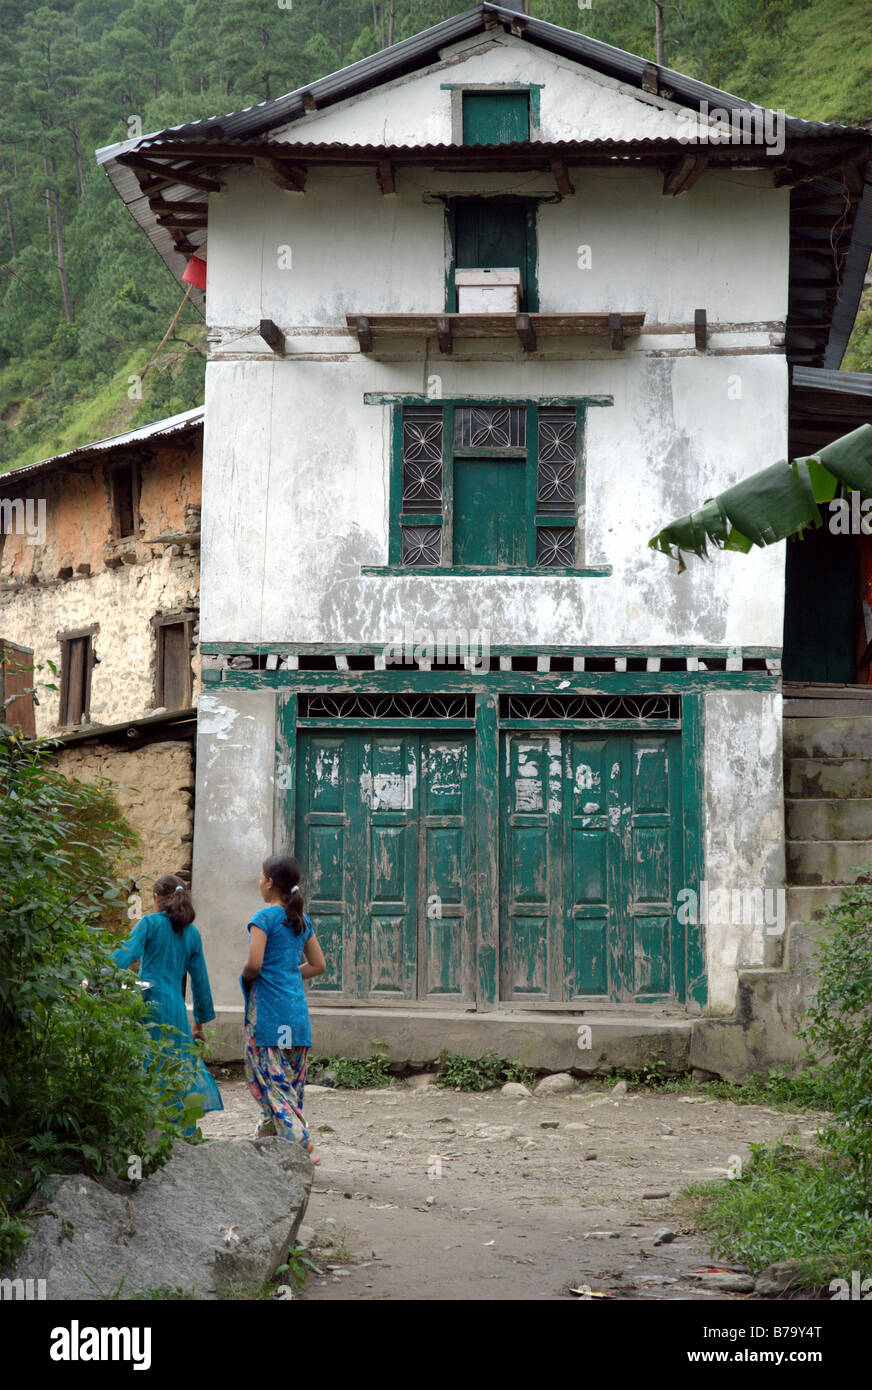 Two girls walk by a house in the village of Singati Bazar, Tamakoshi Valley, Dolakha district, Nepal - Stock Image